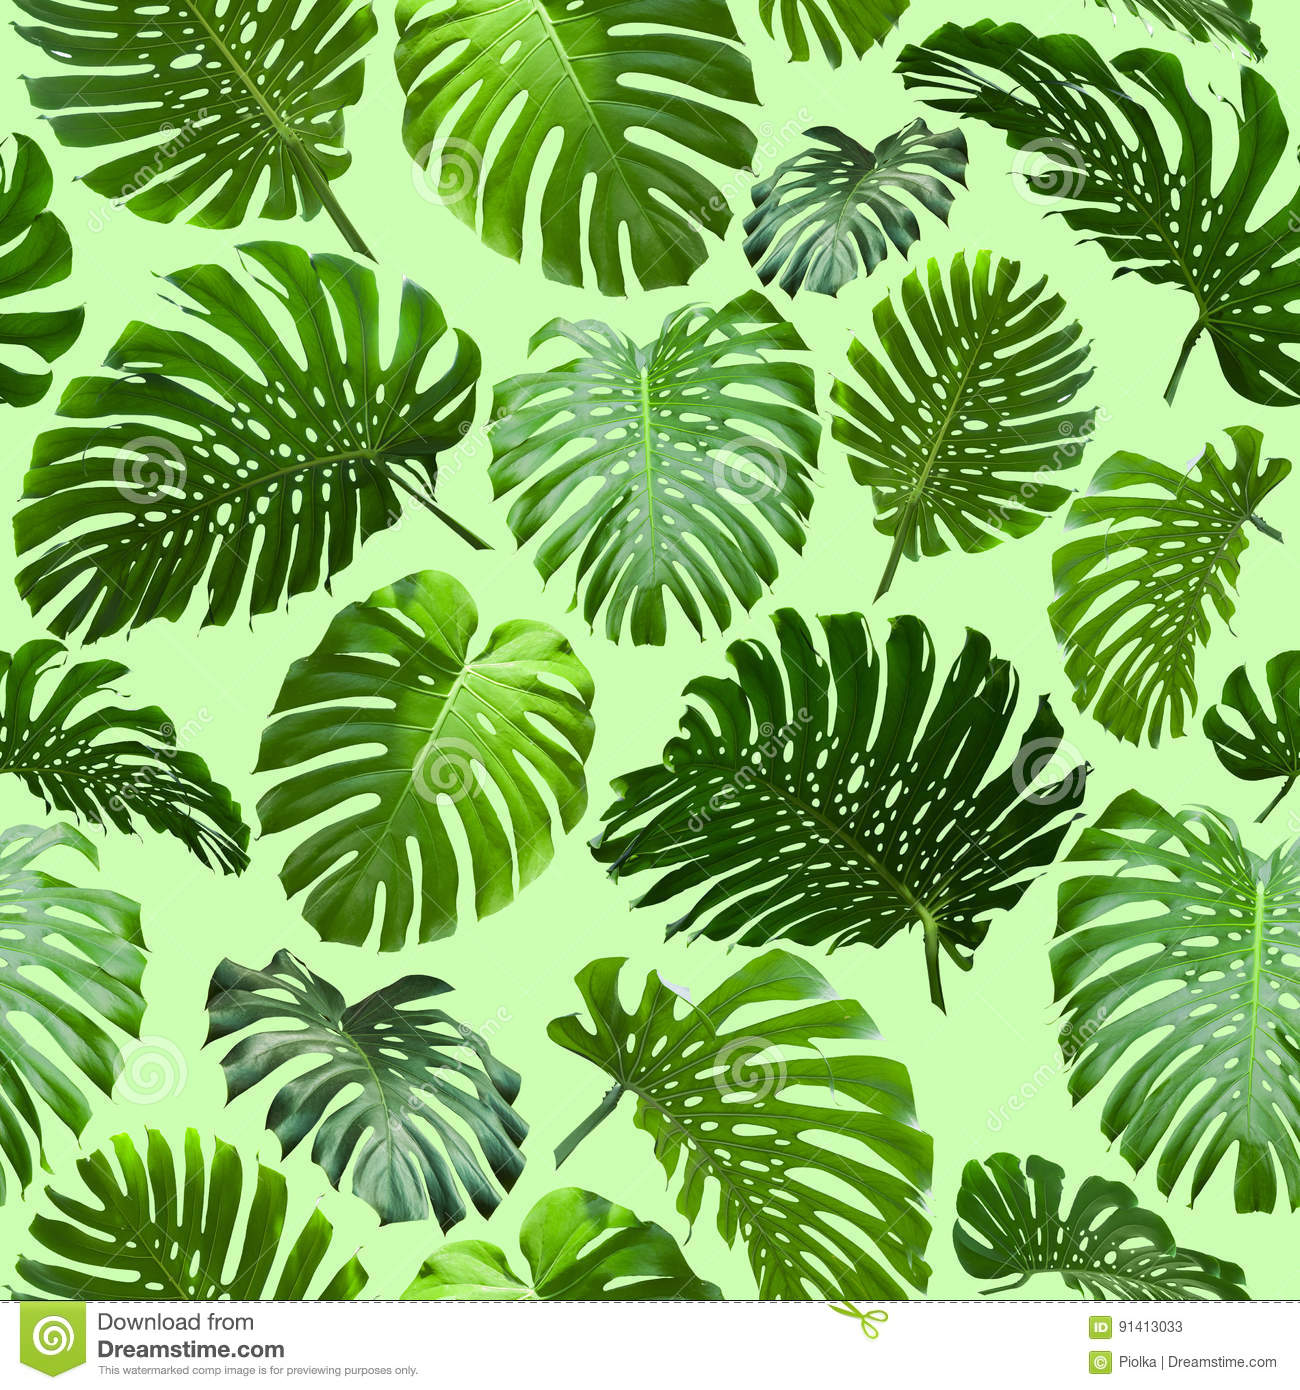 Seamless Tropical Jungle Leaves Background Stock Illustration Illustration Of Painting Leaves 91413033 Jungle background filled with plants and leaves! dreamstime com